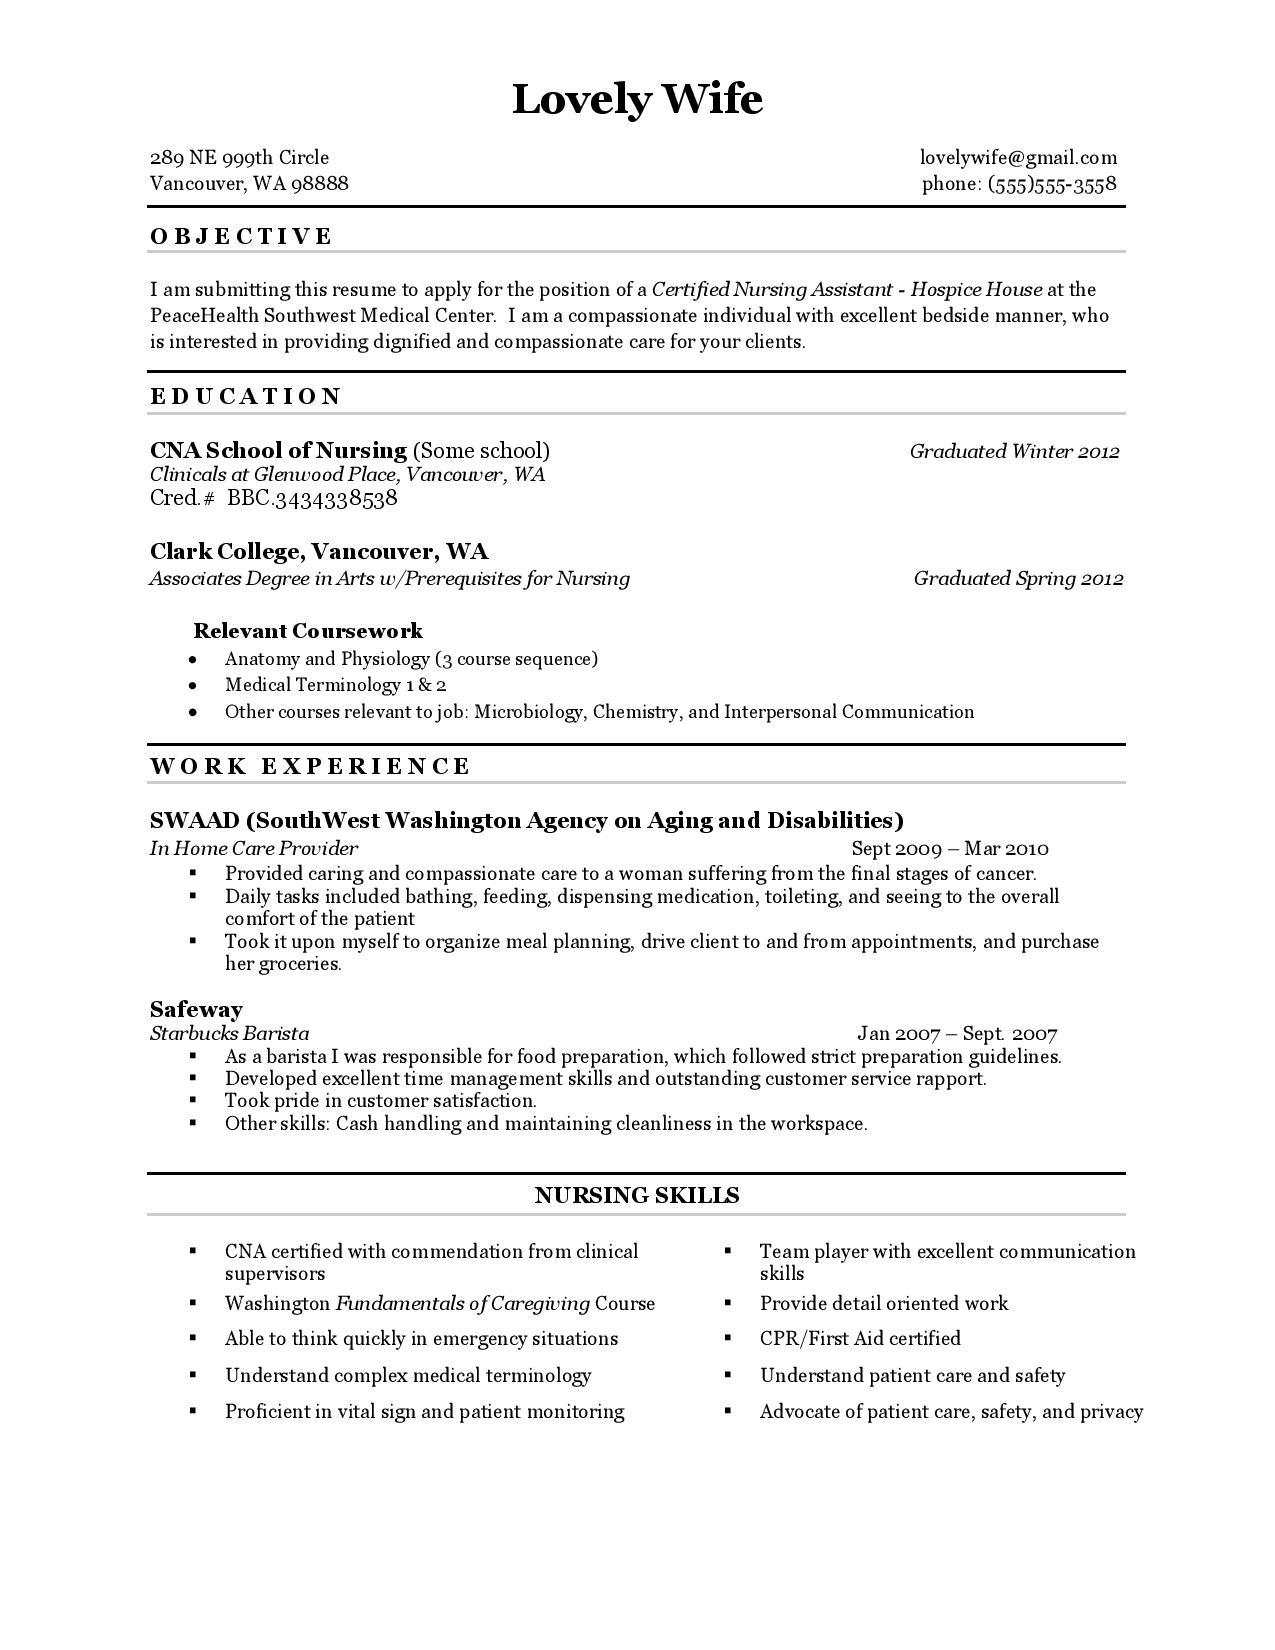 50 Excellent Cna Resume Skills For Design